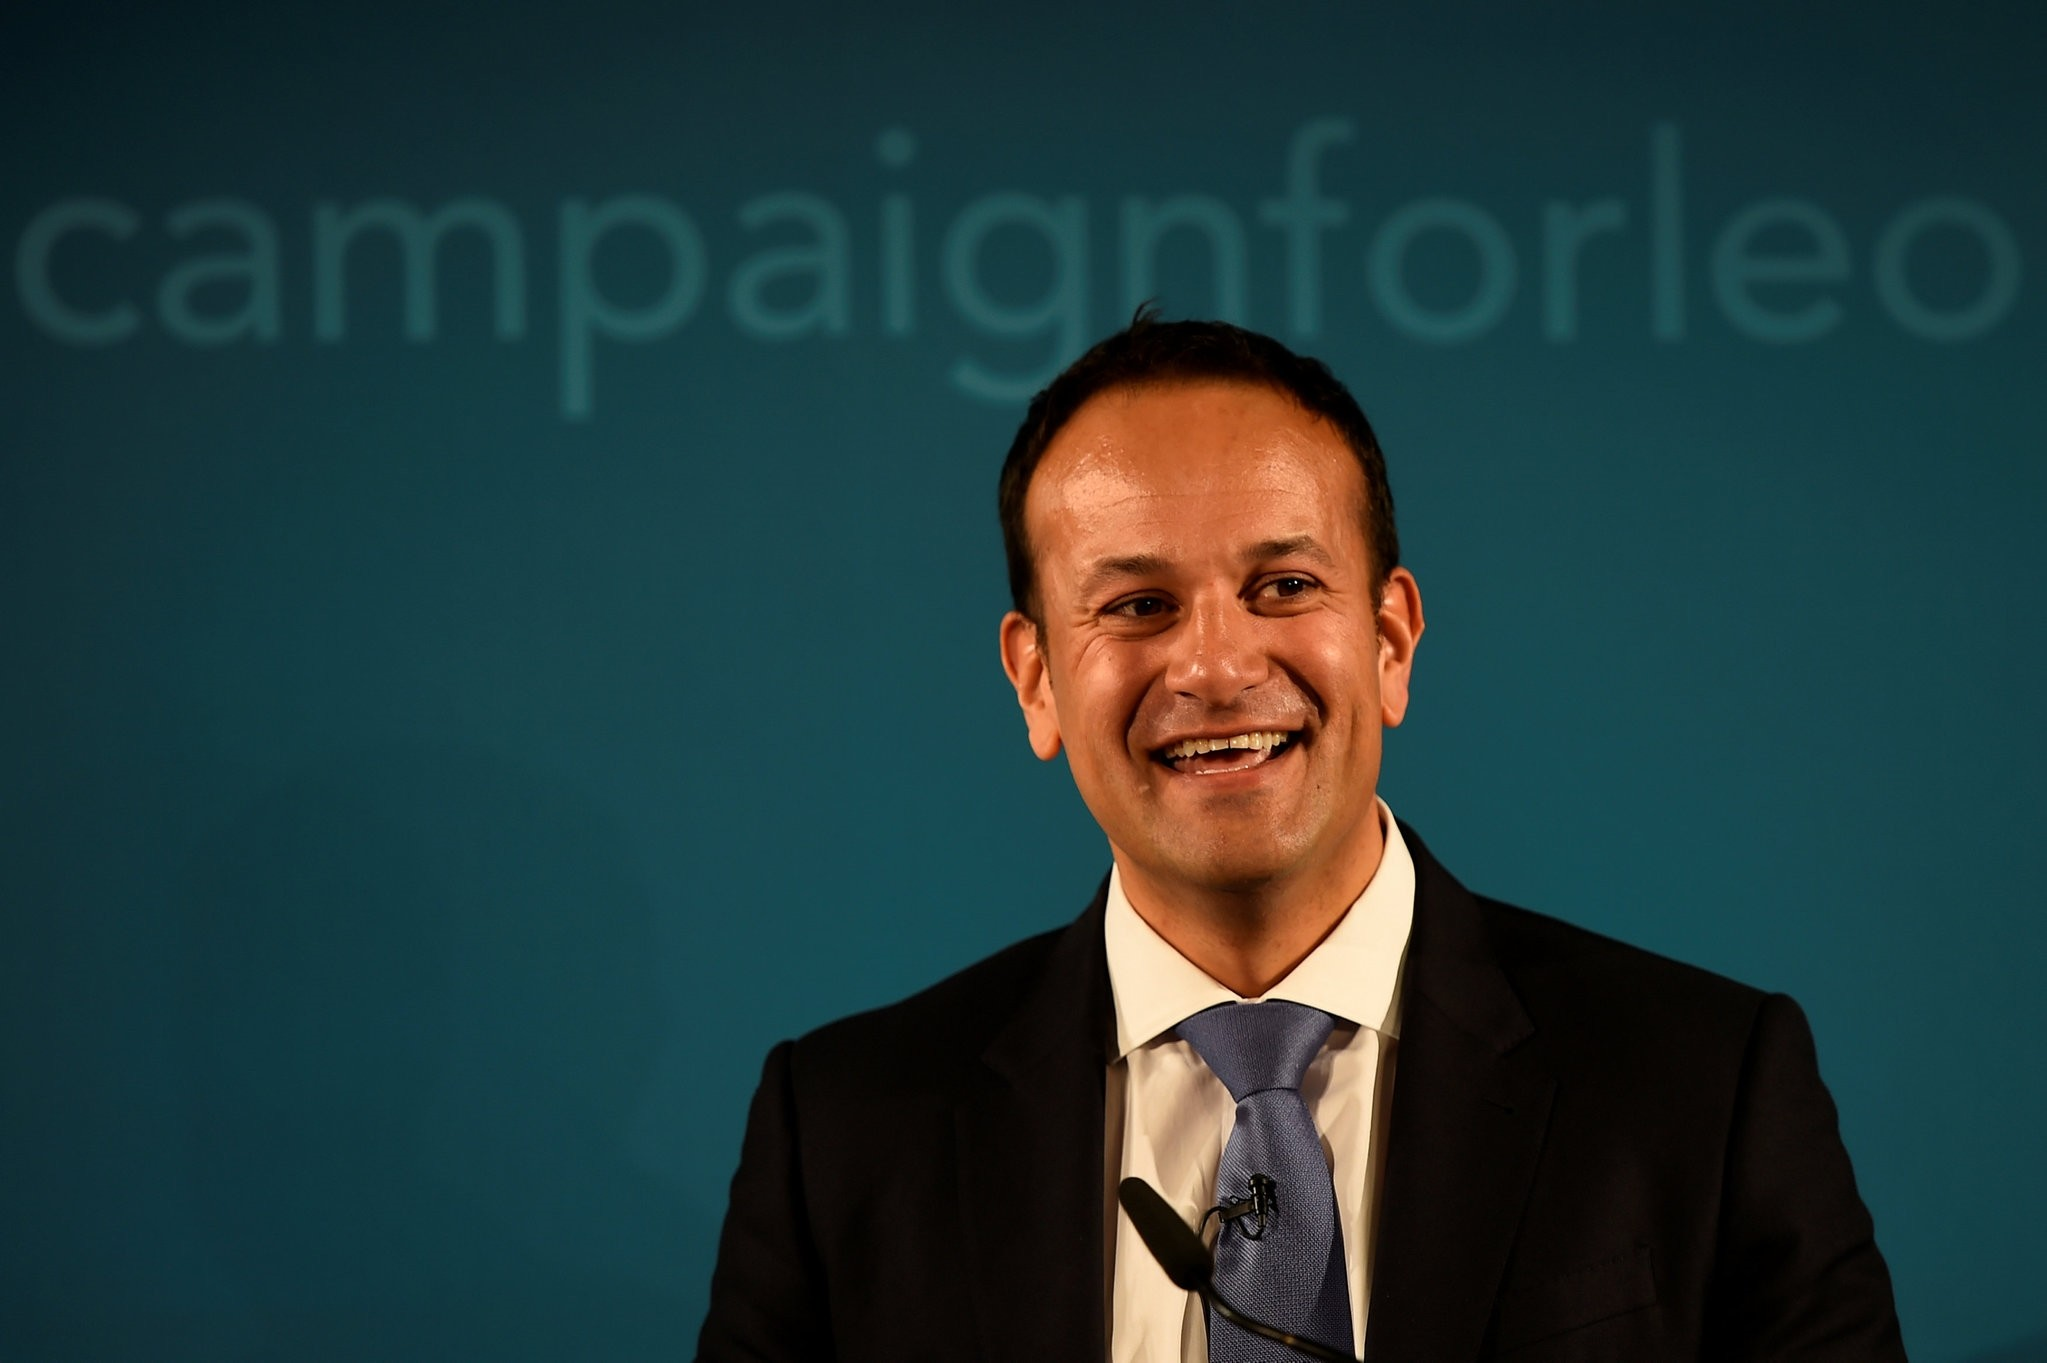 Ireland's Minister for Social Protection Leo Varadkar launches his campaign bid for Fine Gael party leader in Dublin, Ireland May 20, 2017. (REUTERS Photo)